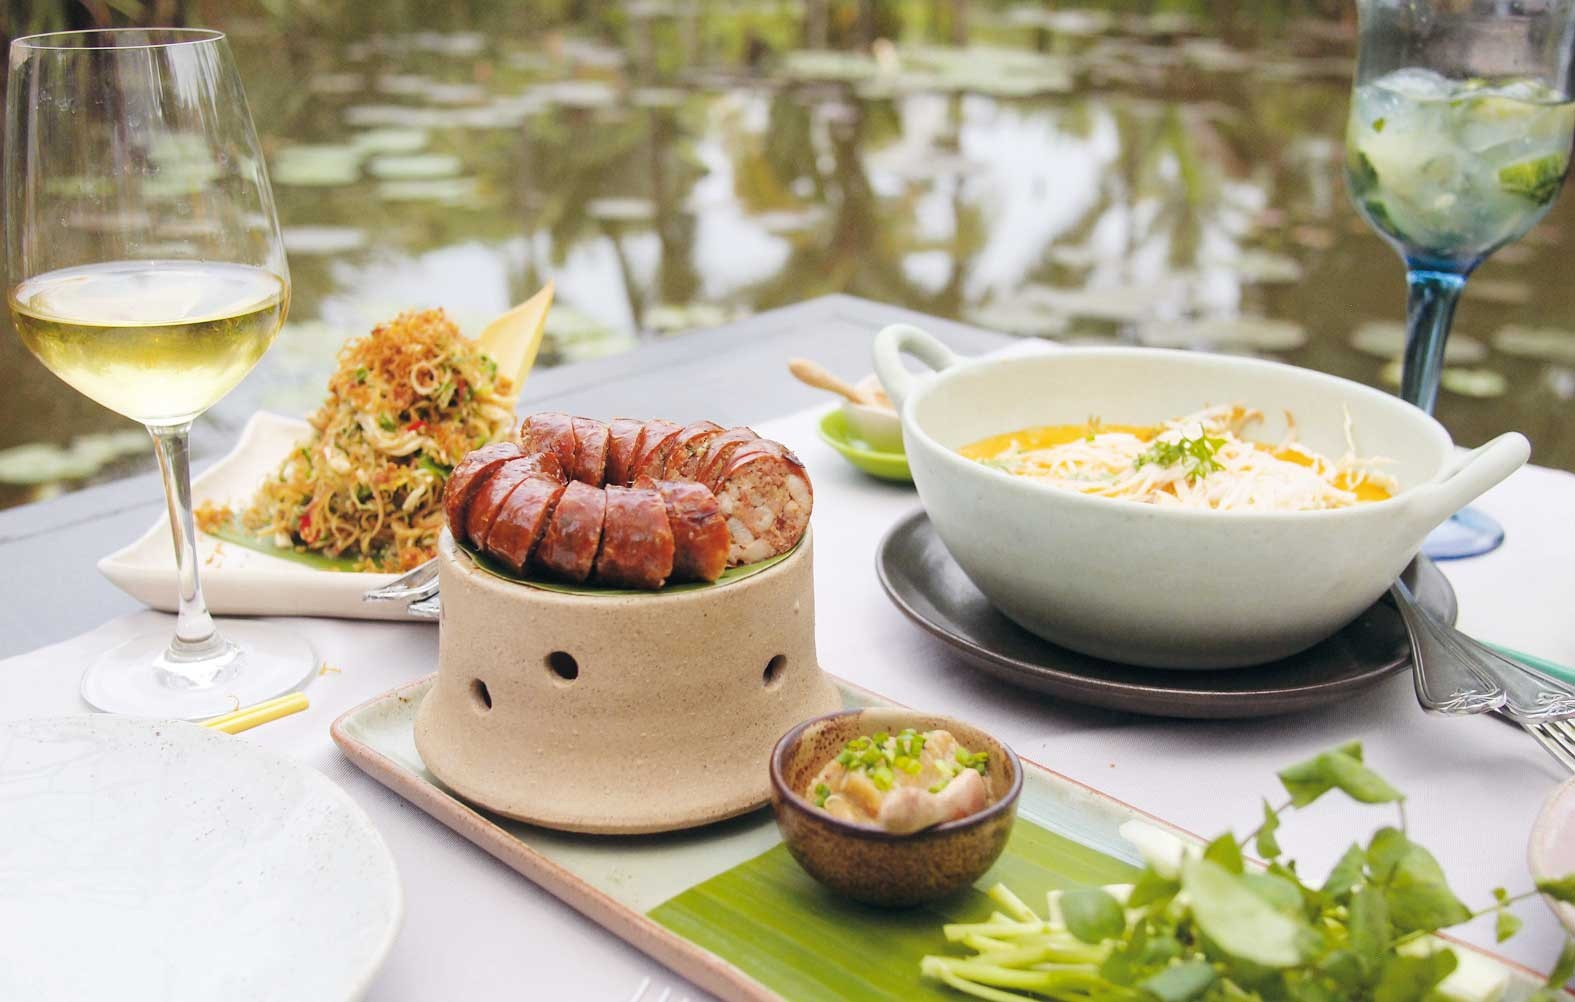 Manda de Laos features a lovely lotus pond and provides some of the best Lao plates.